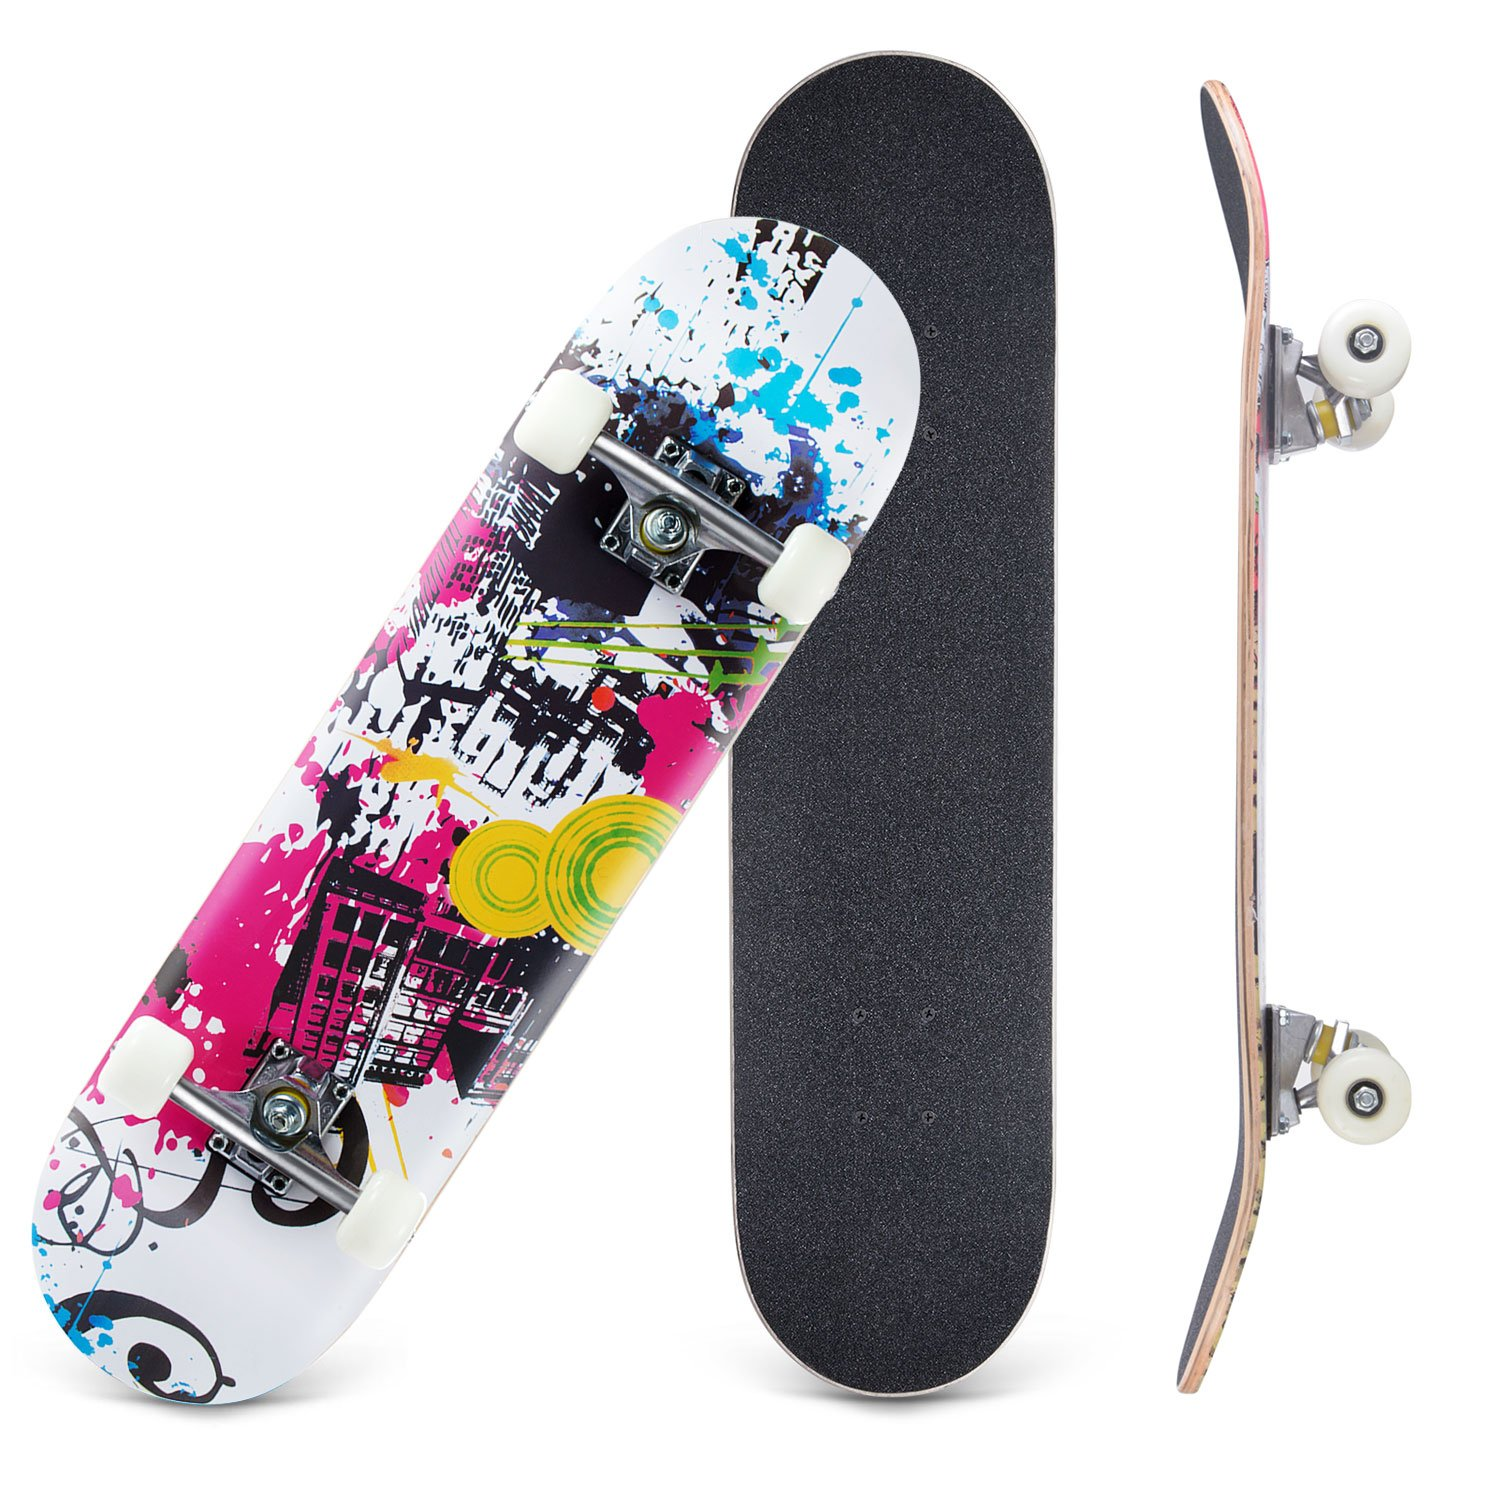 CCTRO Skateboards 31'' Pro Skateboard Complete, 8 Layer Maple Skateboard Deck for Extreme Sports and Outdoors, Tricks Skate Board for Beginners and Pro (City charming)